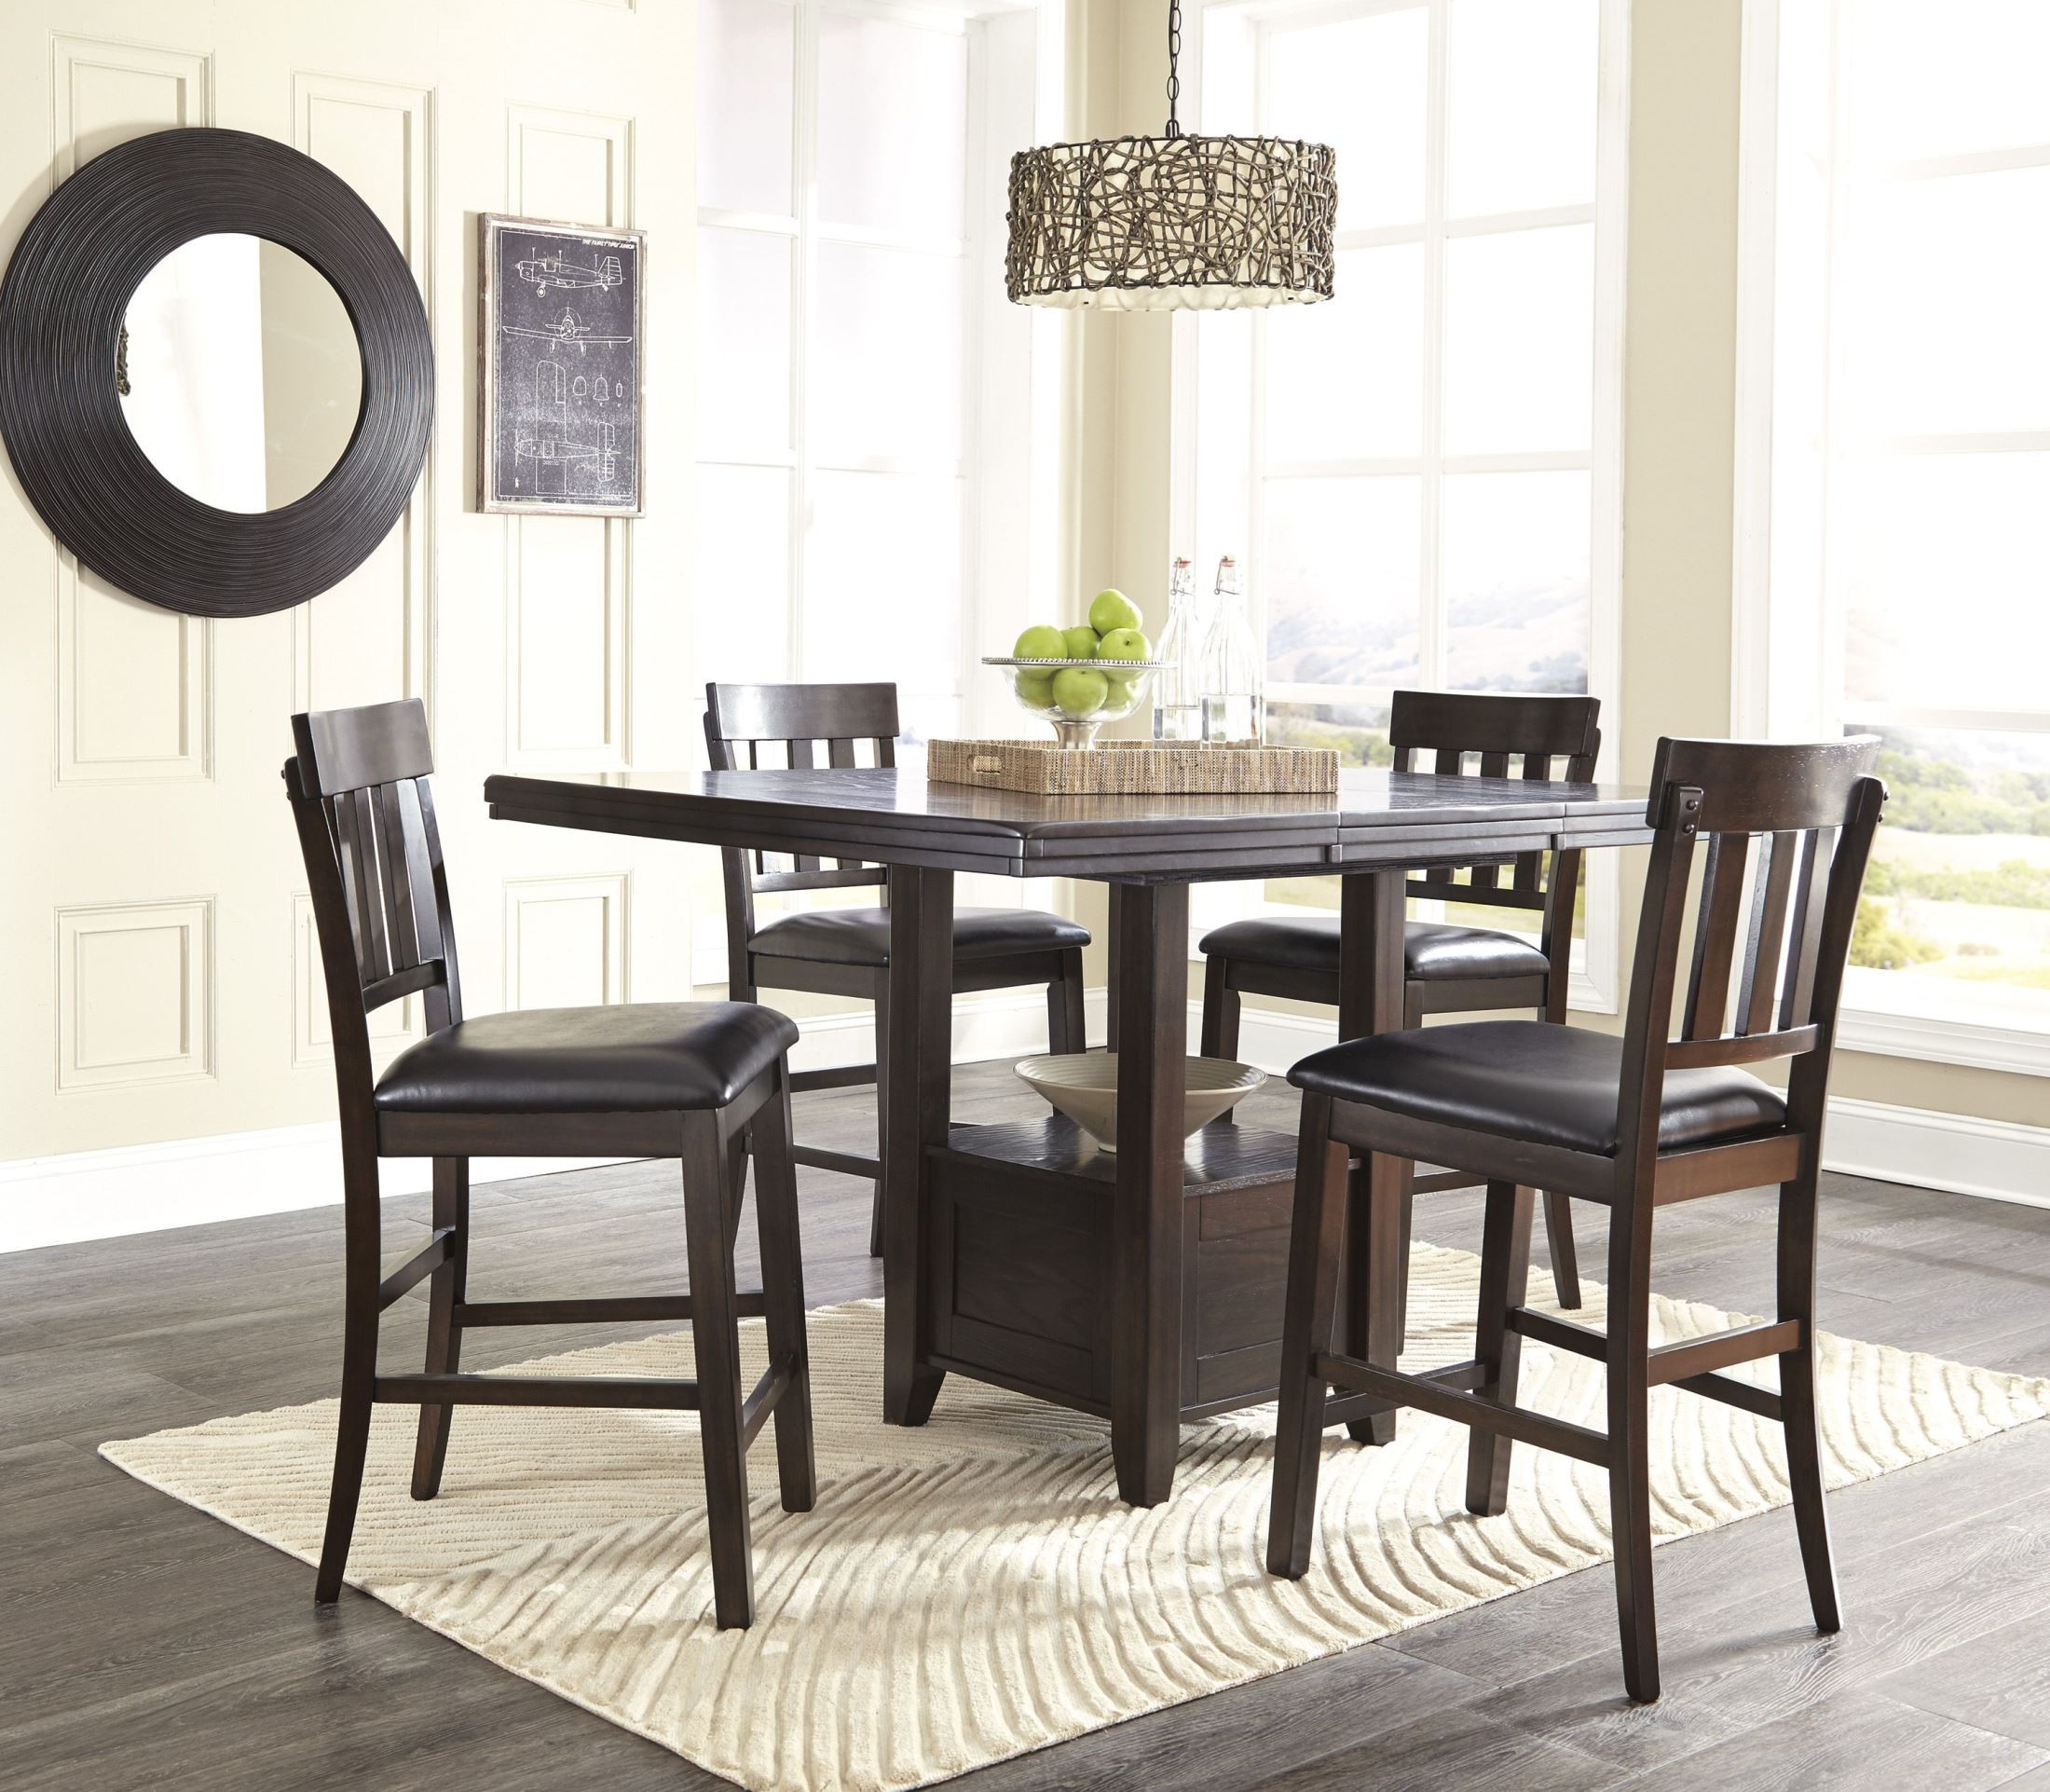 Dining Room Sets Dallas Tx: Ashley Haddigan 5pc Dark Brown Counter Height Dining Room